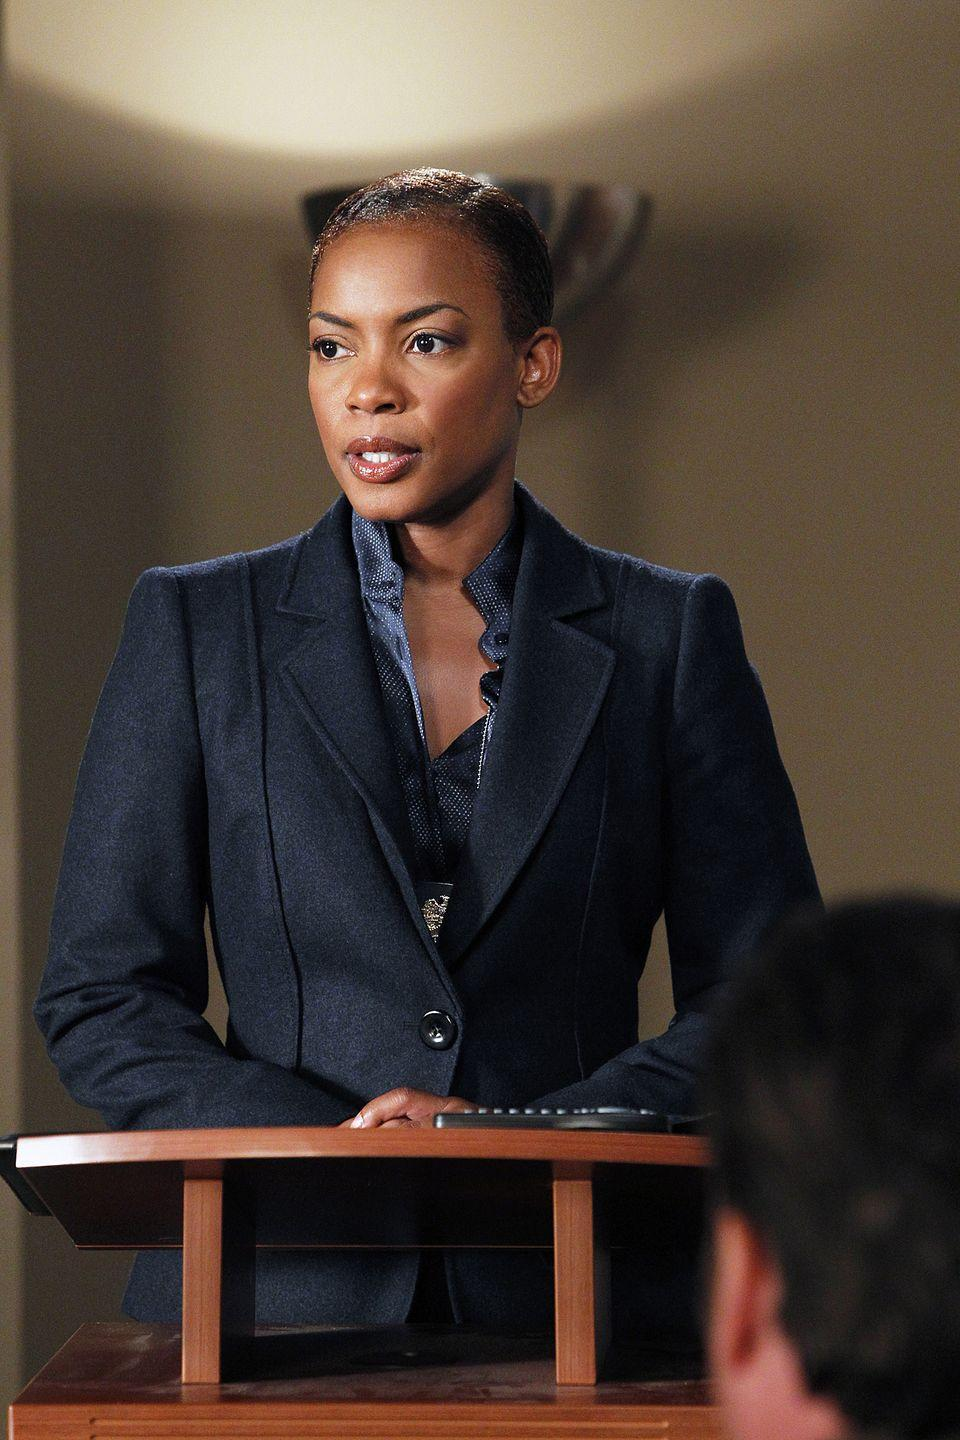 <p>Ellis made her professional acting debut in 1995 in a Broadway revival of William Shakespeare's <em>The Tempest</em> and starred in several other plays. You might also recognize her from <em>Men of Honor</em>, <em>Ray</em>, and <em>The Taking of Pelham 123</em>.</p>